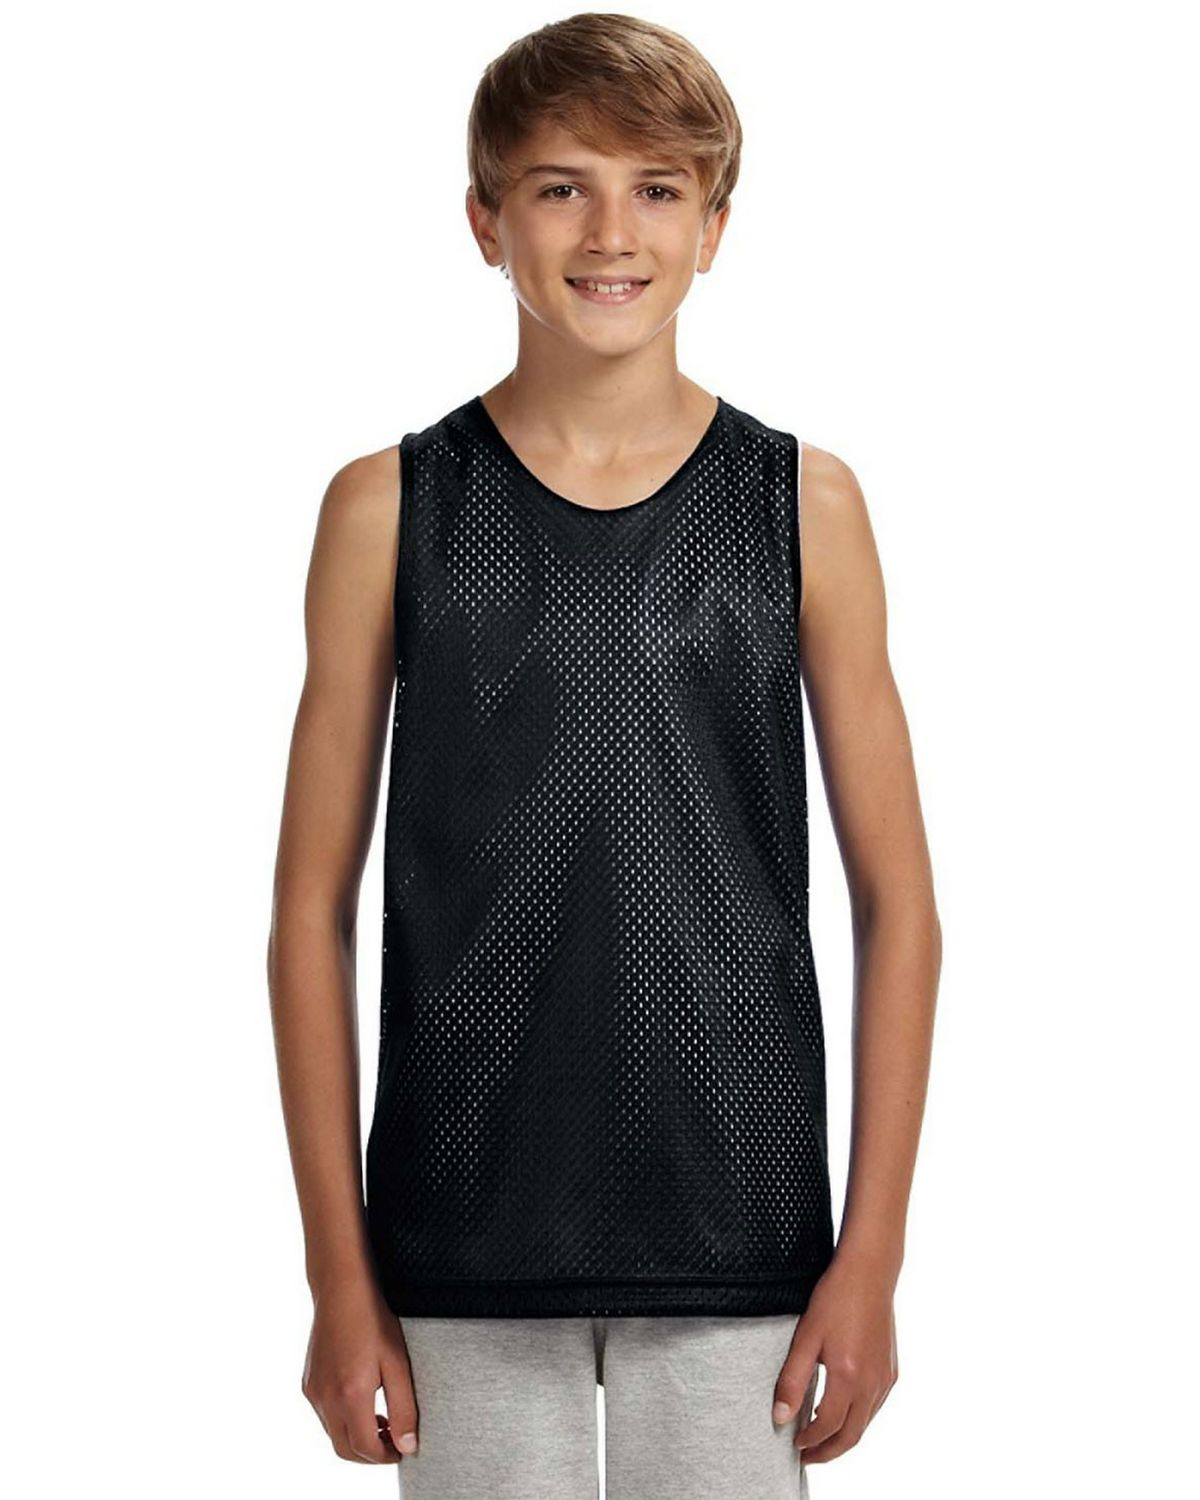 Image of A4 N2206 Youth Reversible Mesh Tank - Black/White - S